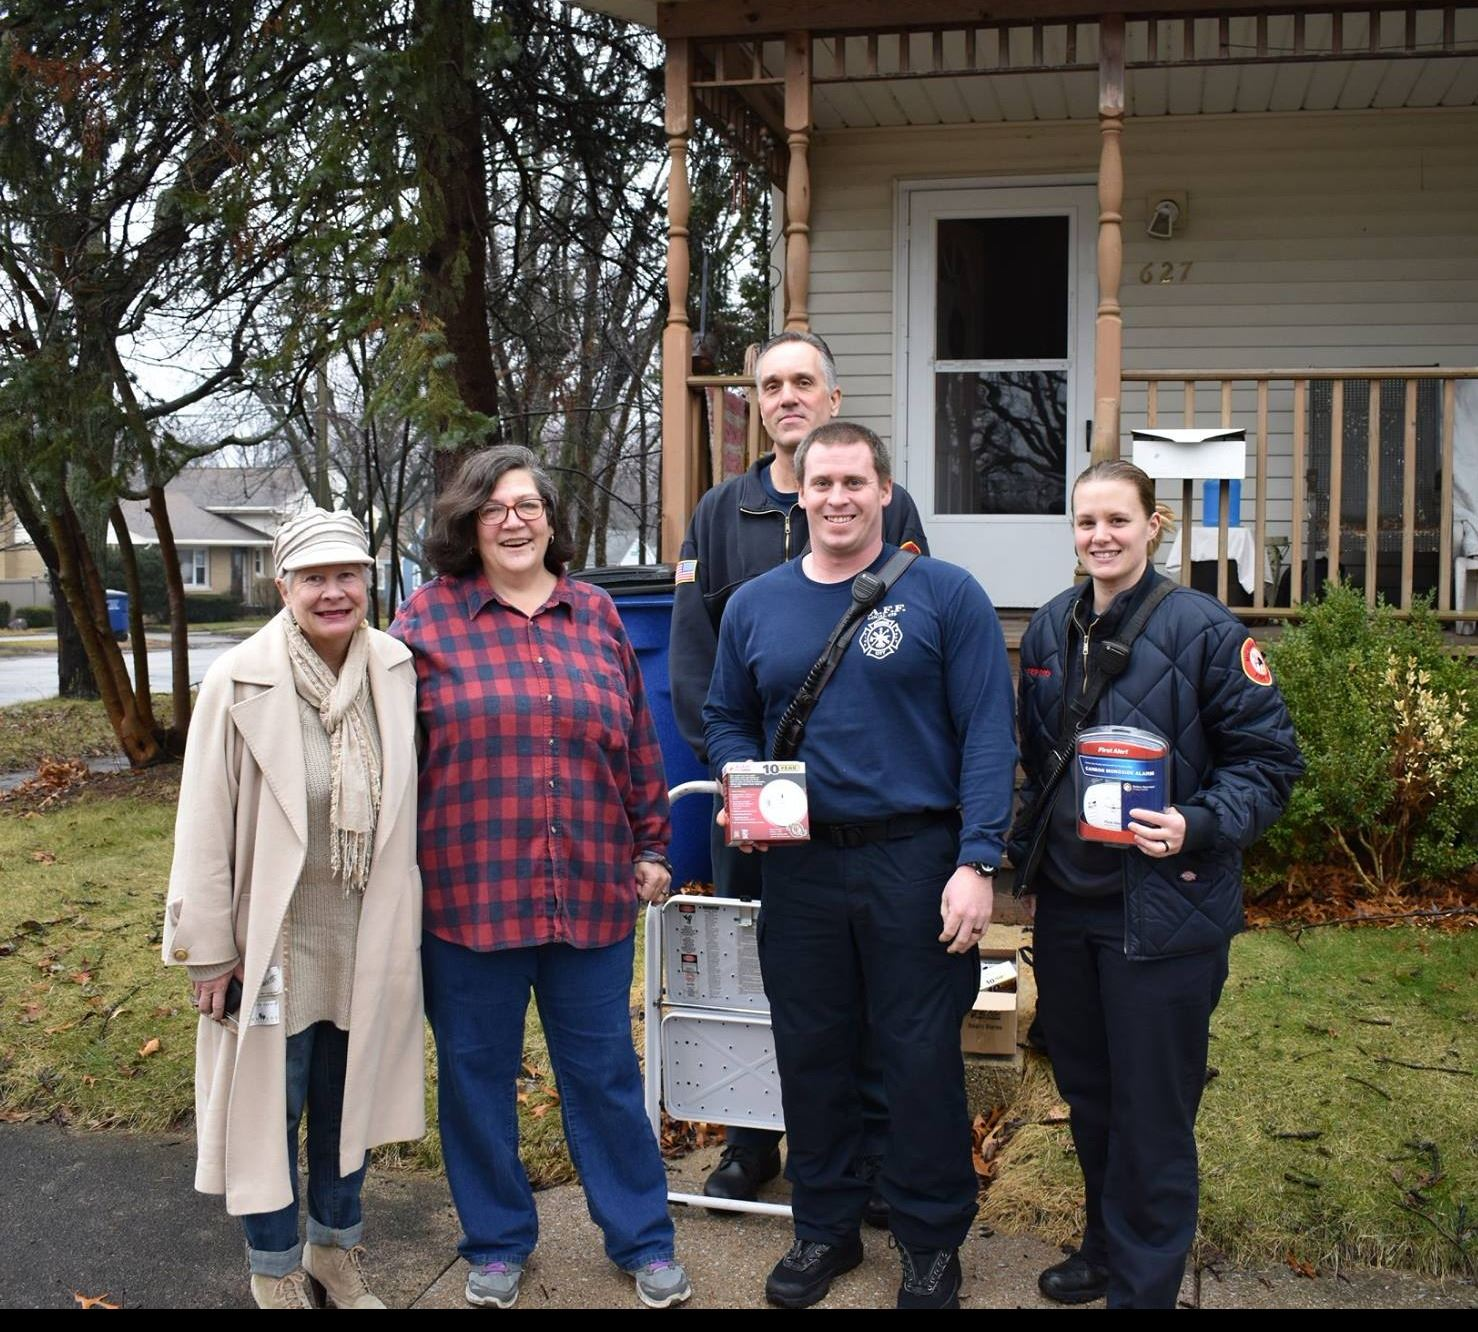 MCFD and the LOK Wishing Tree Foundation providing carbon monoxide detectors to residents